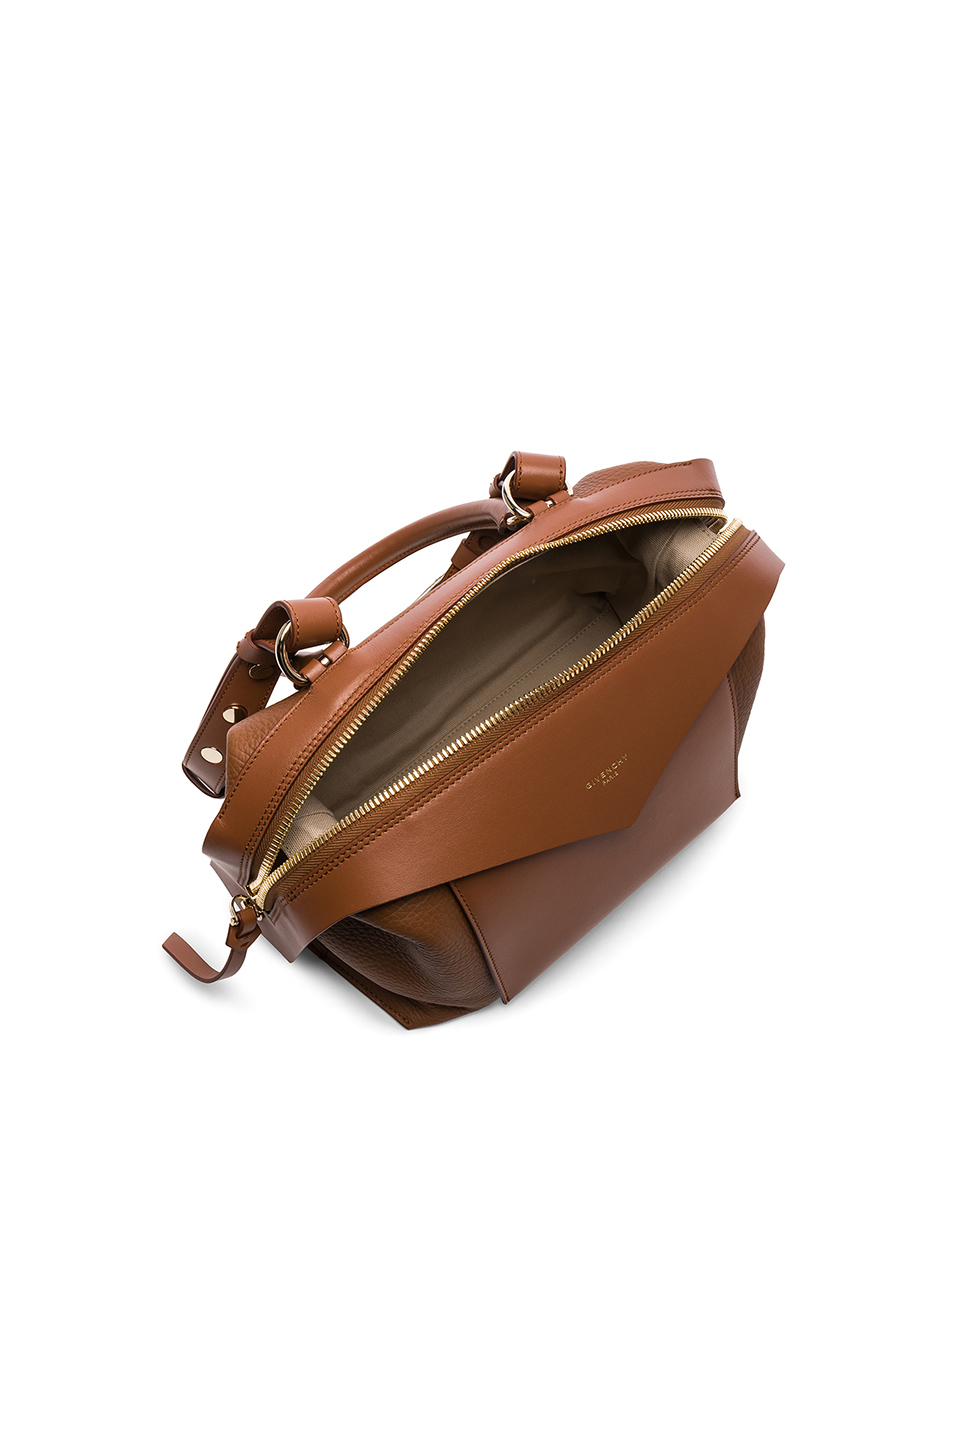 Small Grained & Smooth Leather Sway, Givenchy